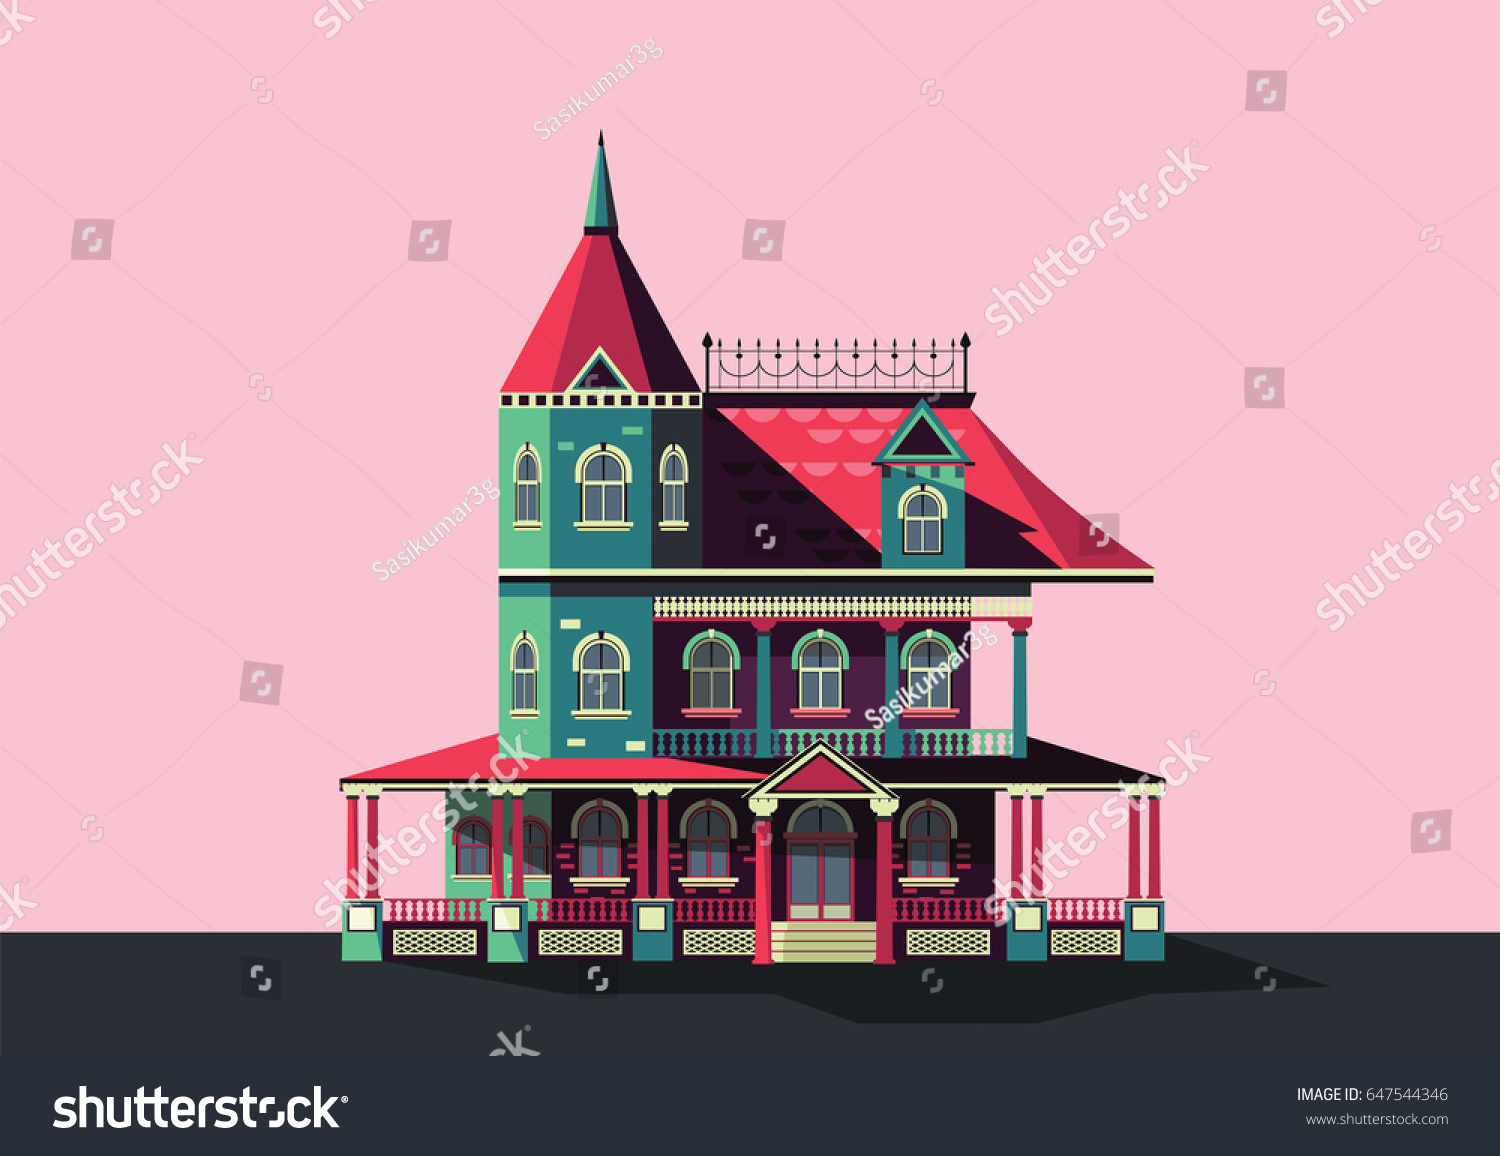 Colorful Vector Victorian Era House Stock Vector (Royalty Free ...